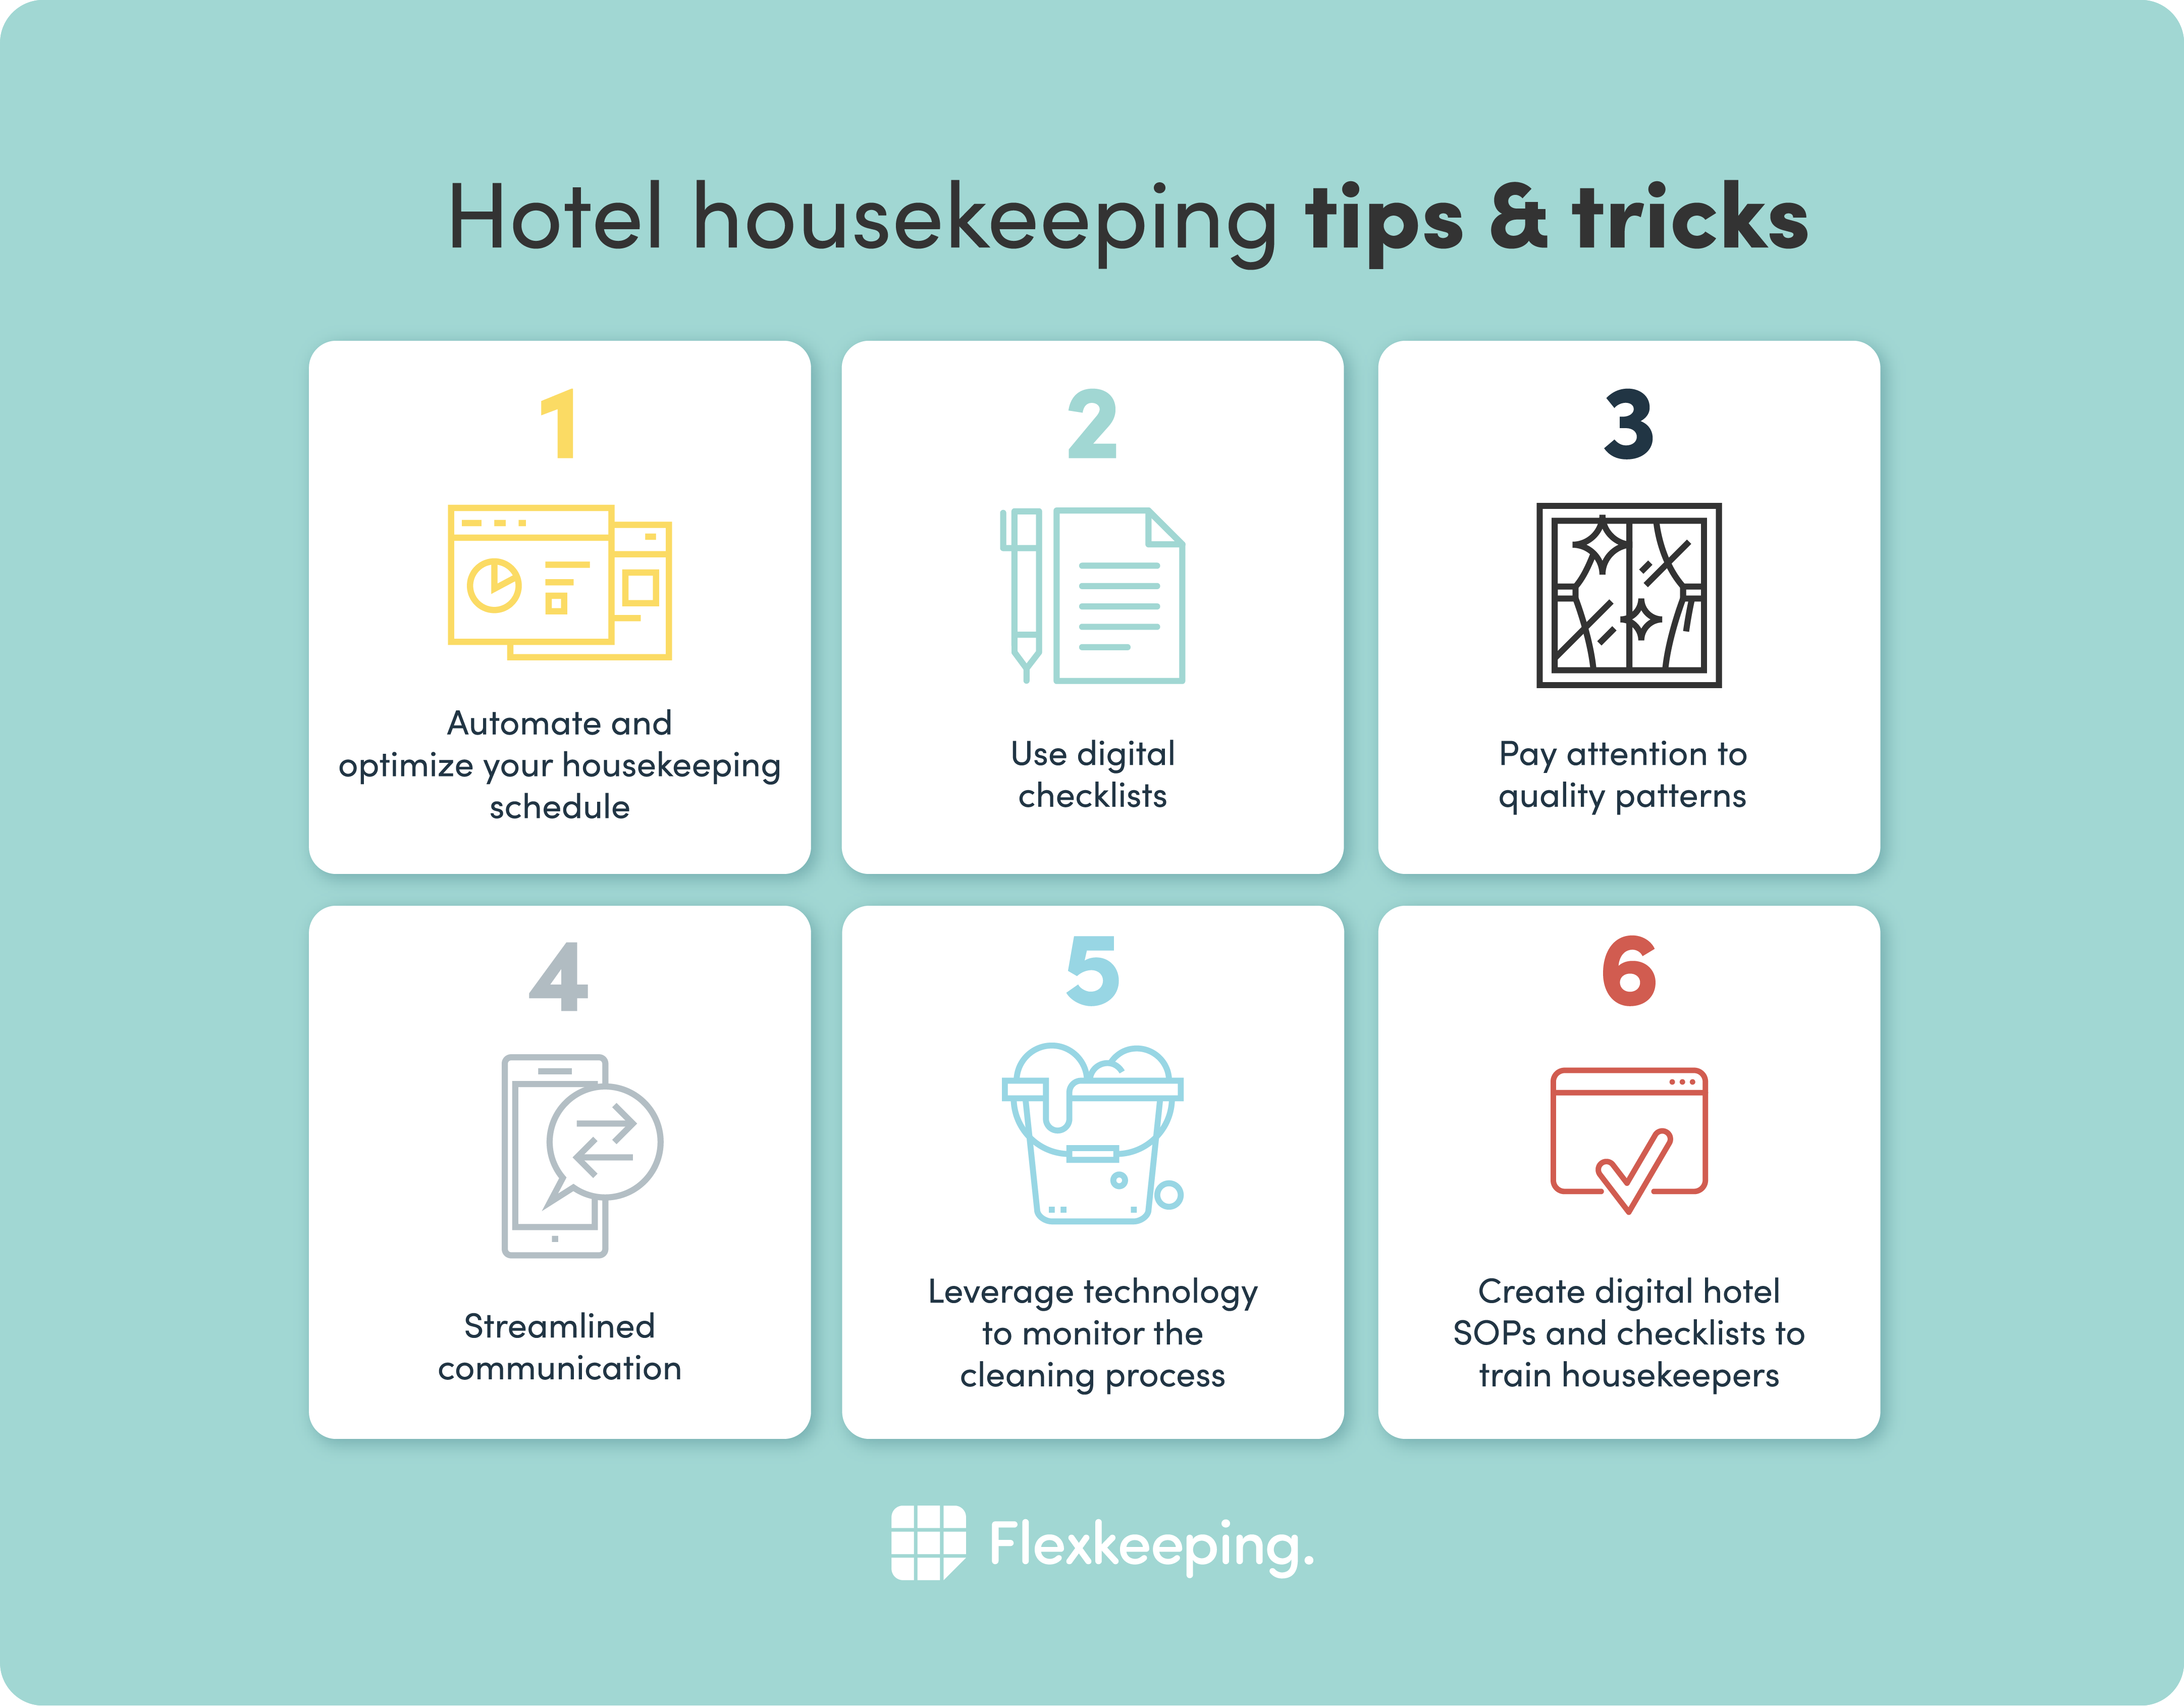 hotel housekeeping tips and tricks